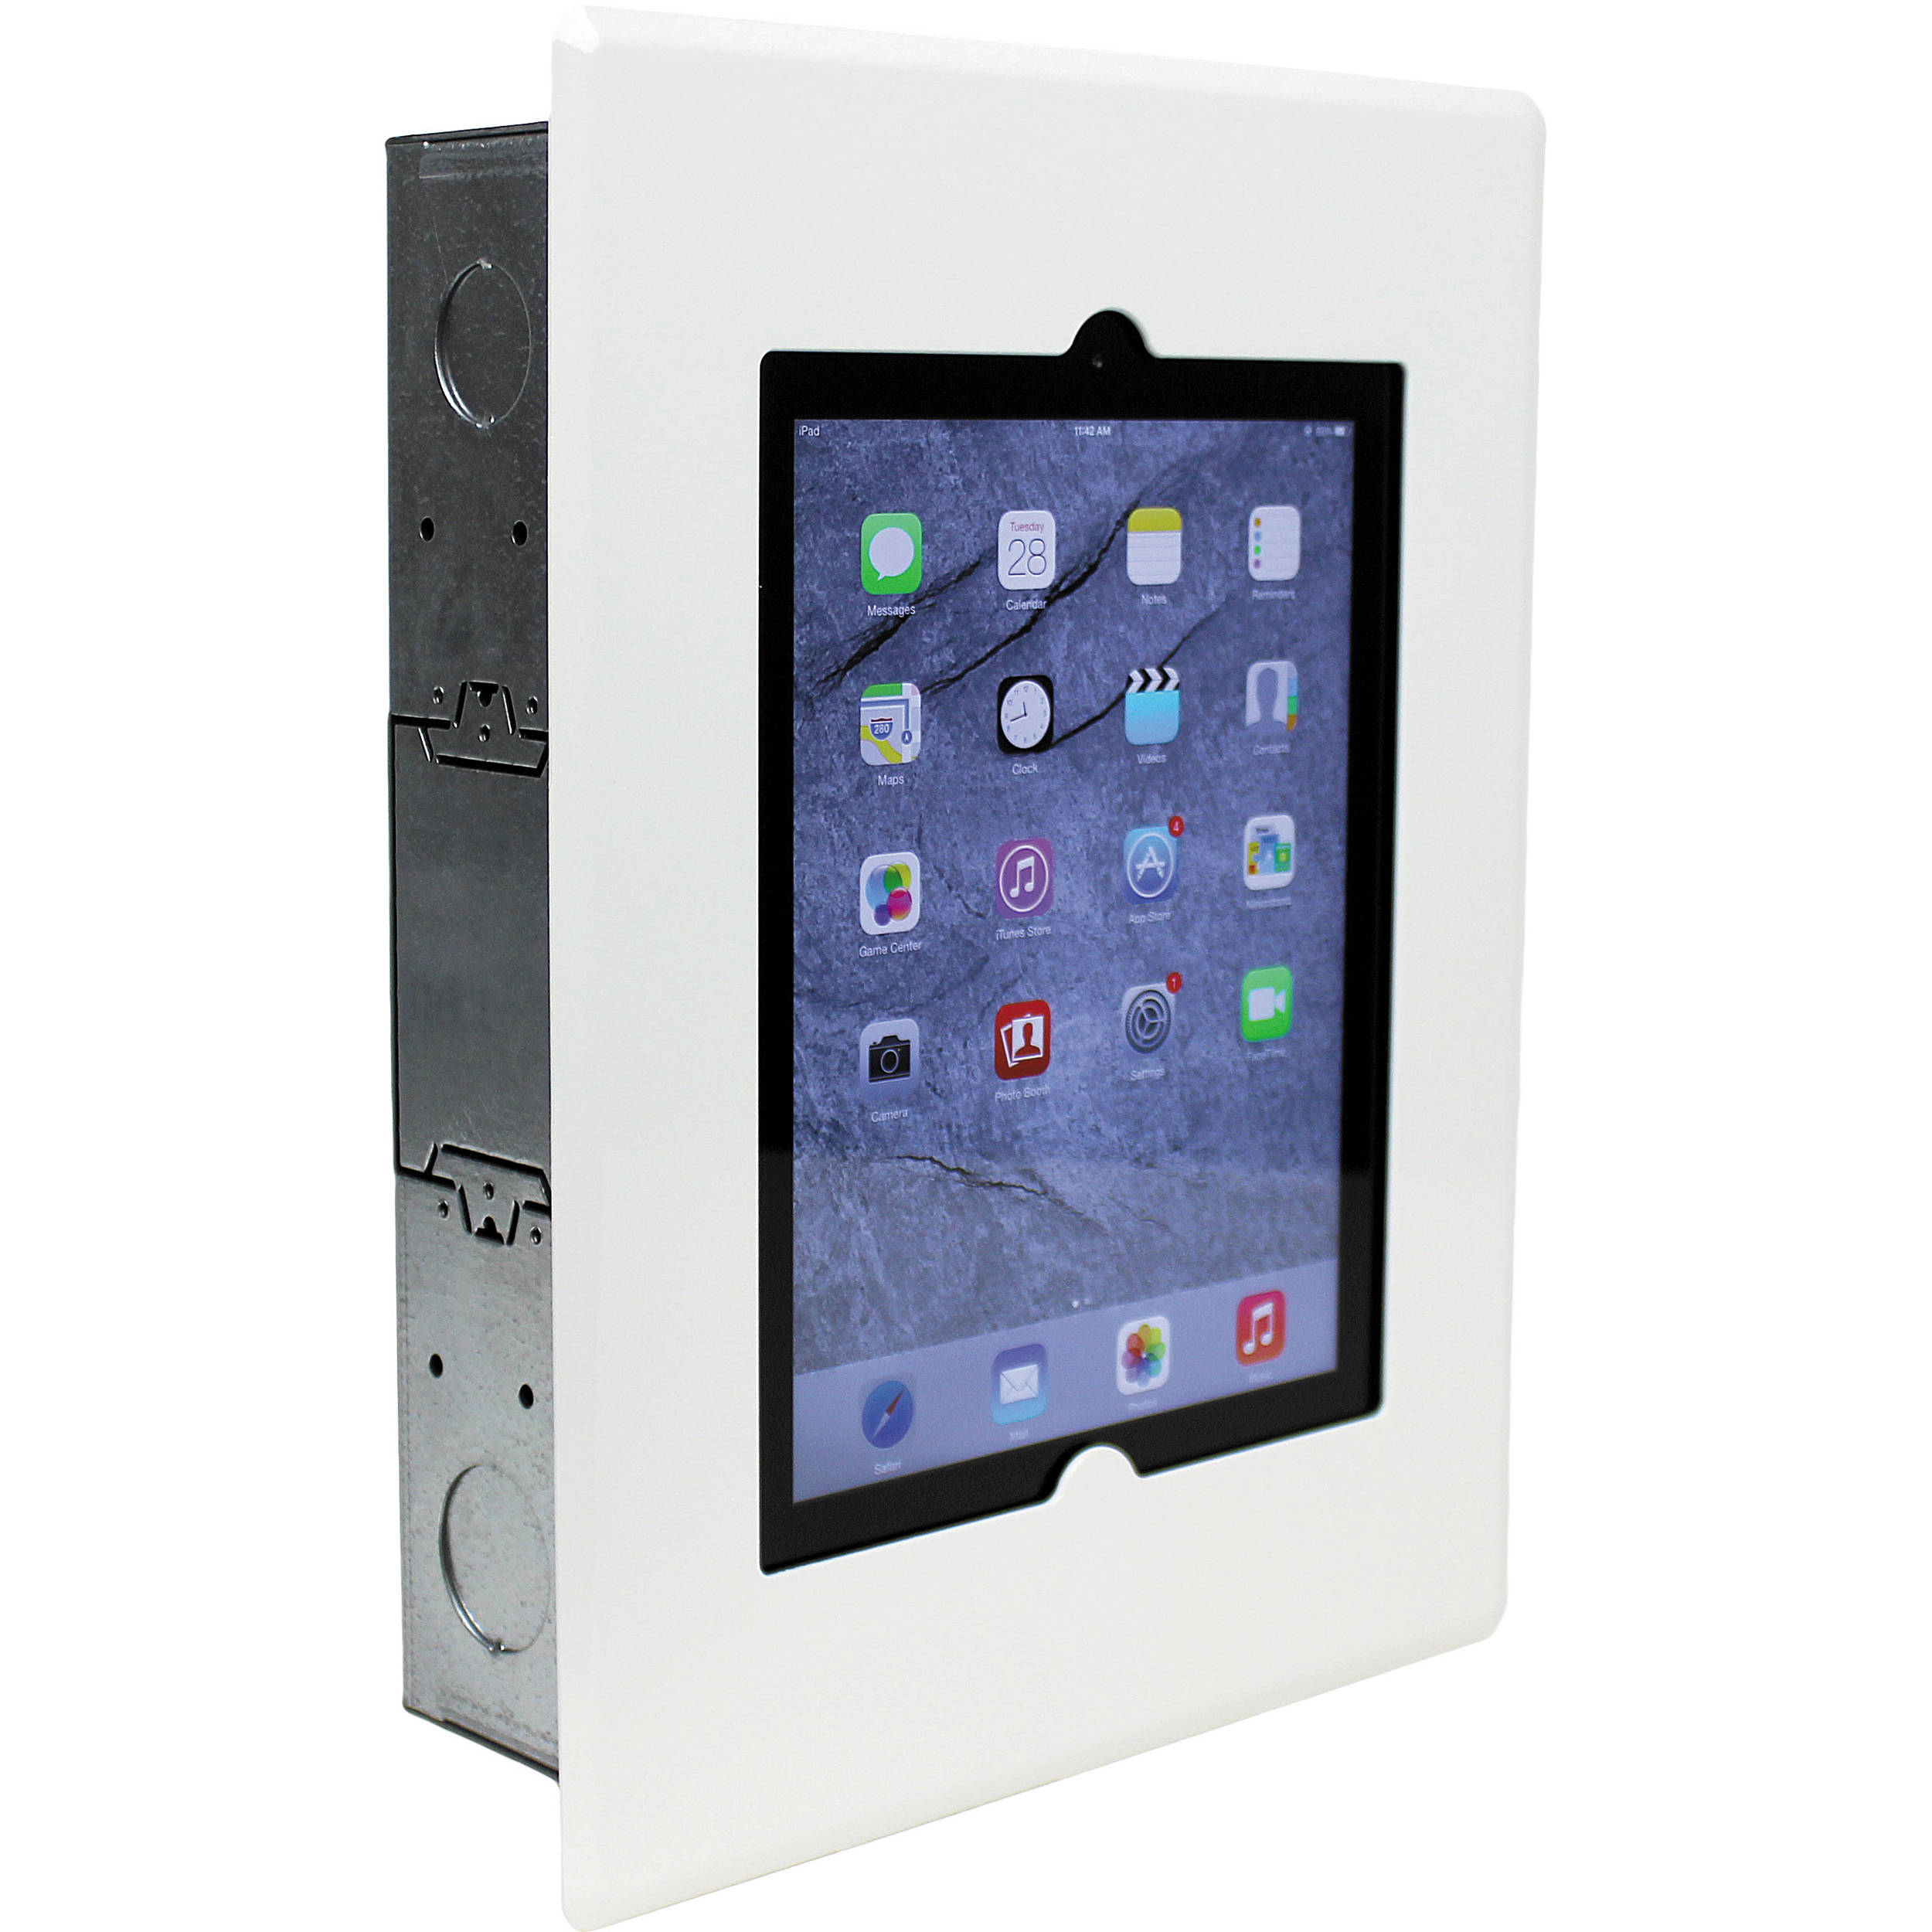 Fsr Flush Mount With Back Box And Cover For Ipad We